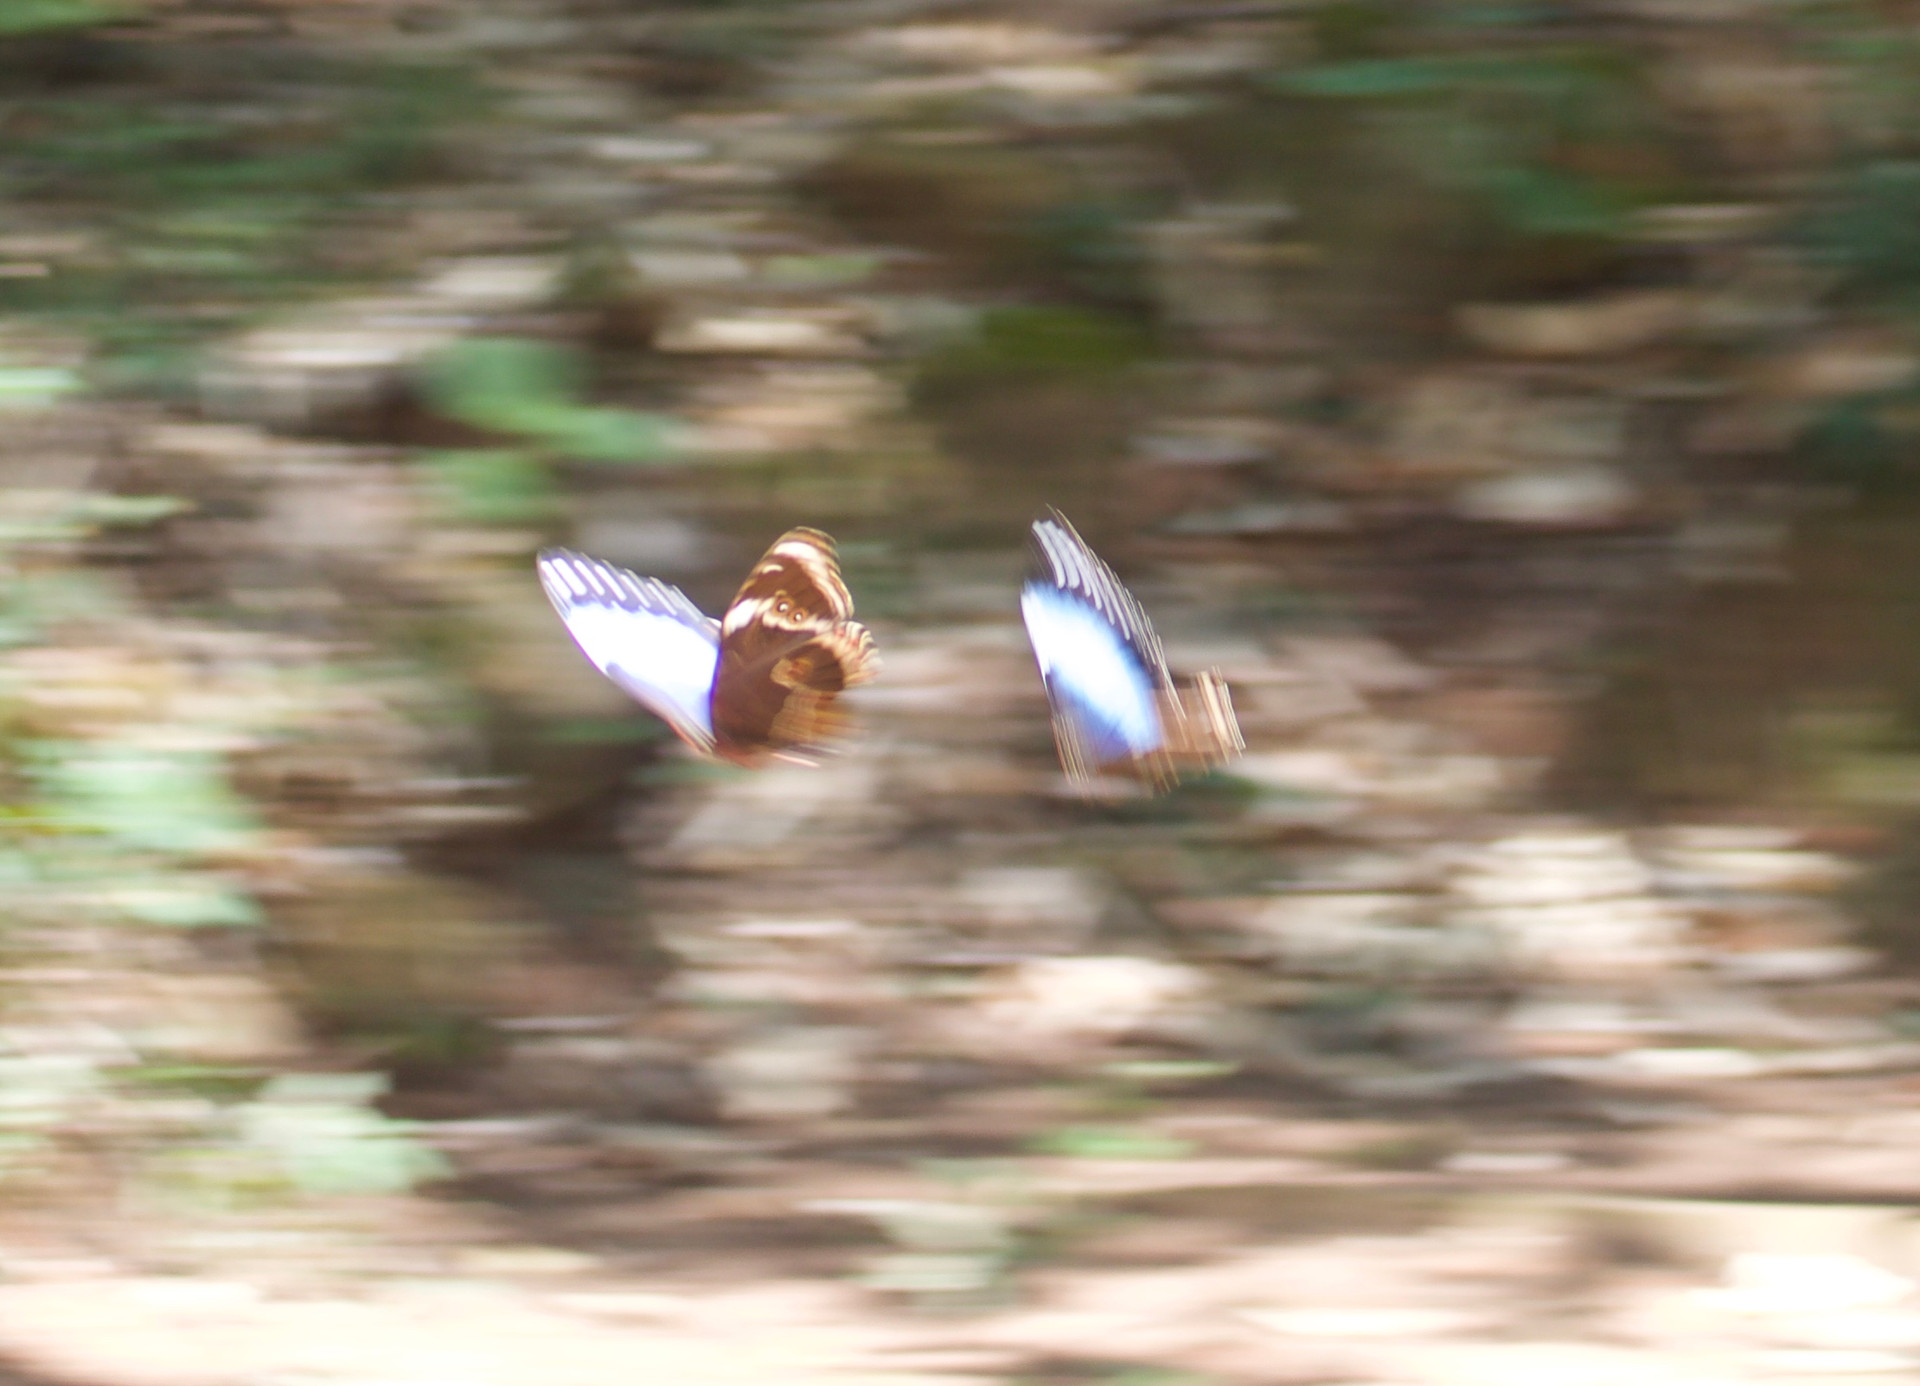 Two big blue butterflies flying together